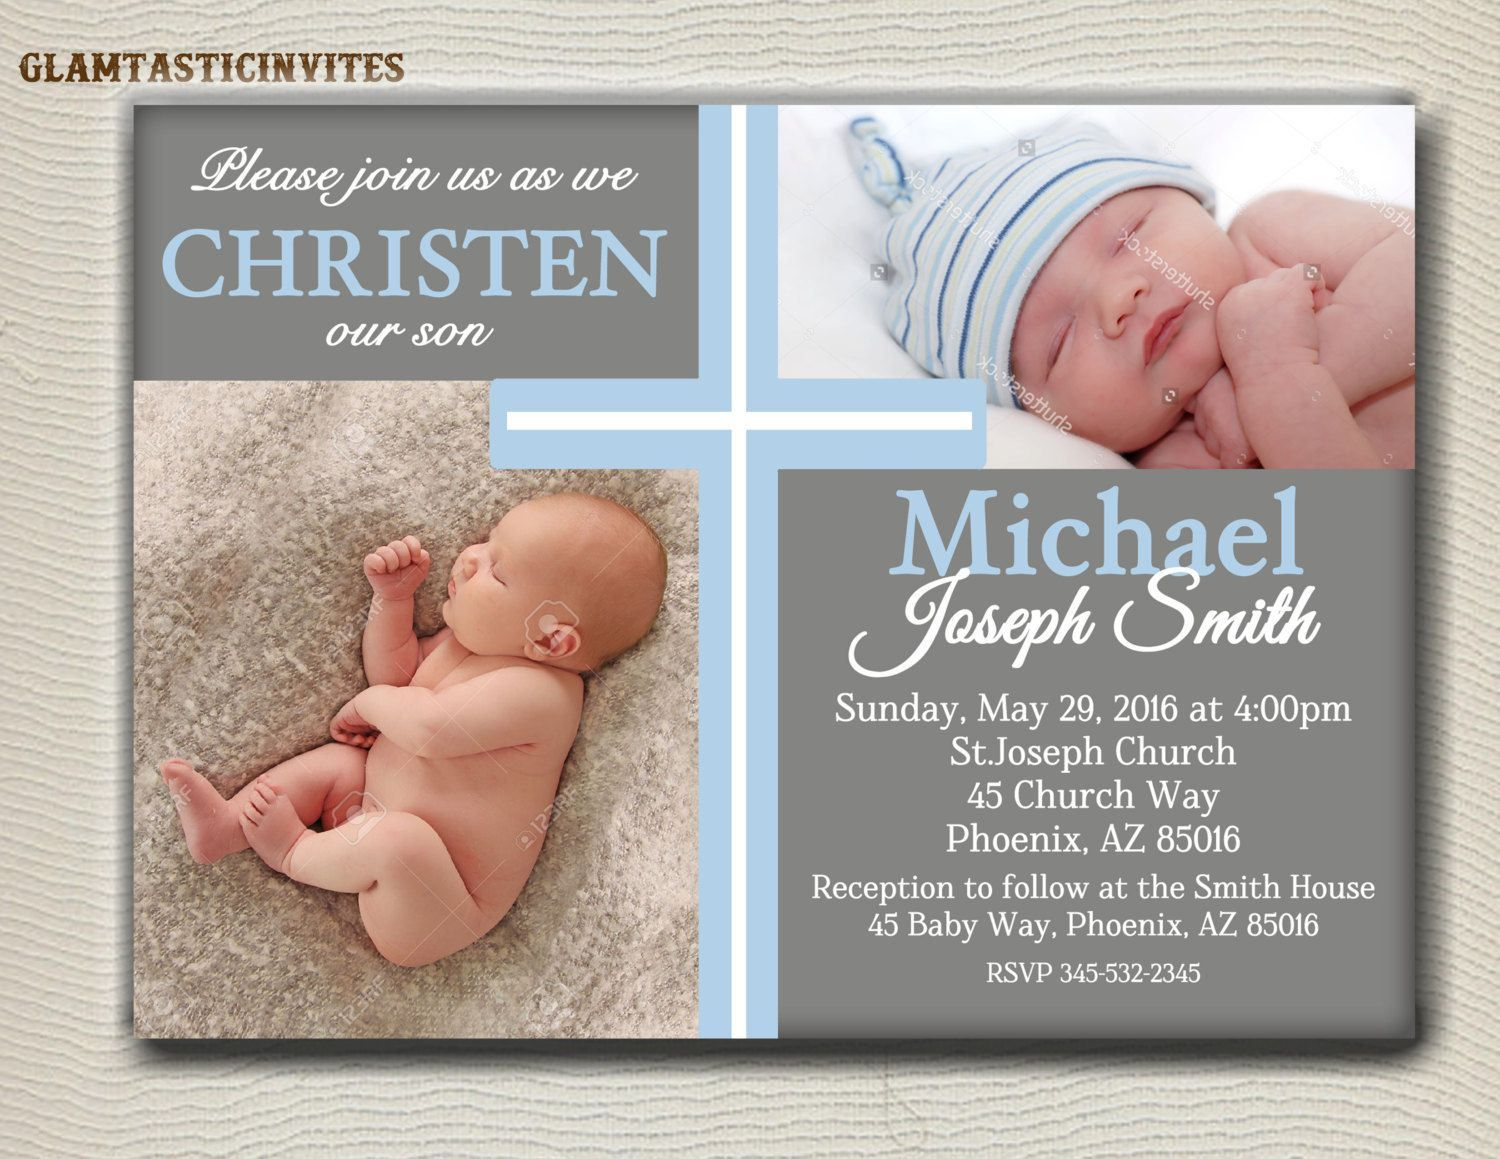 Baby baptism invitations templates christening pinterest baby baptism invitations templates stopboris Image collections